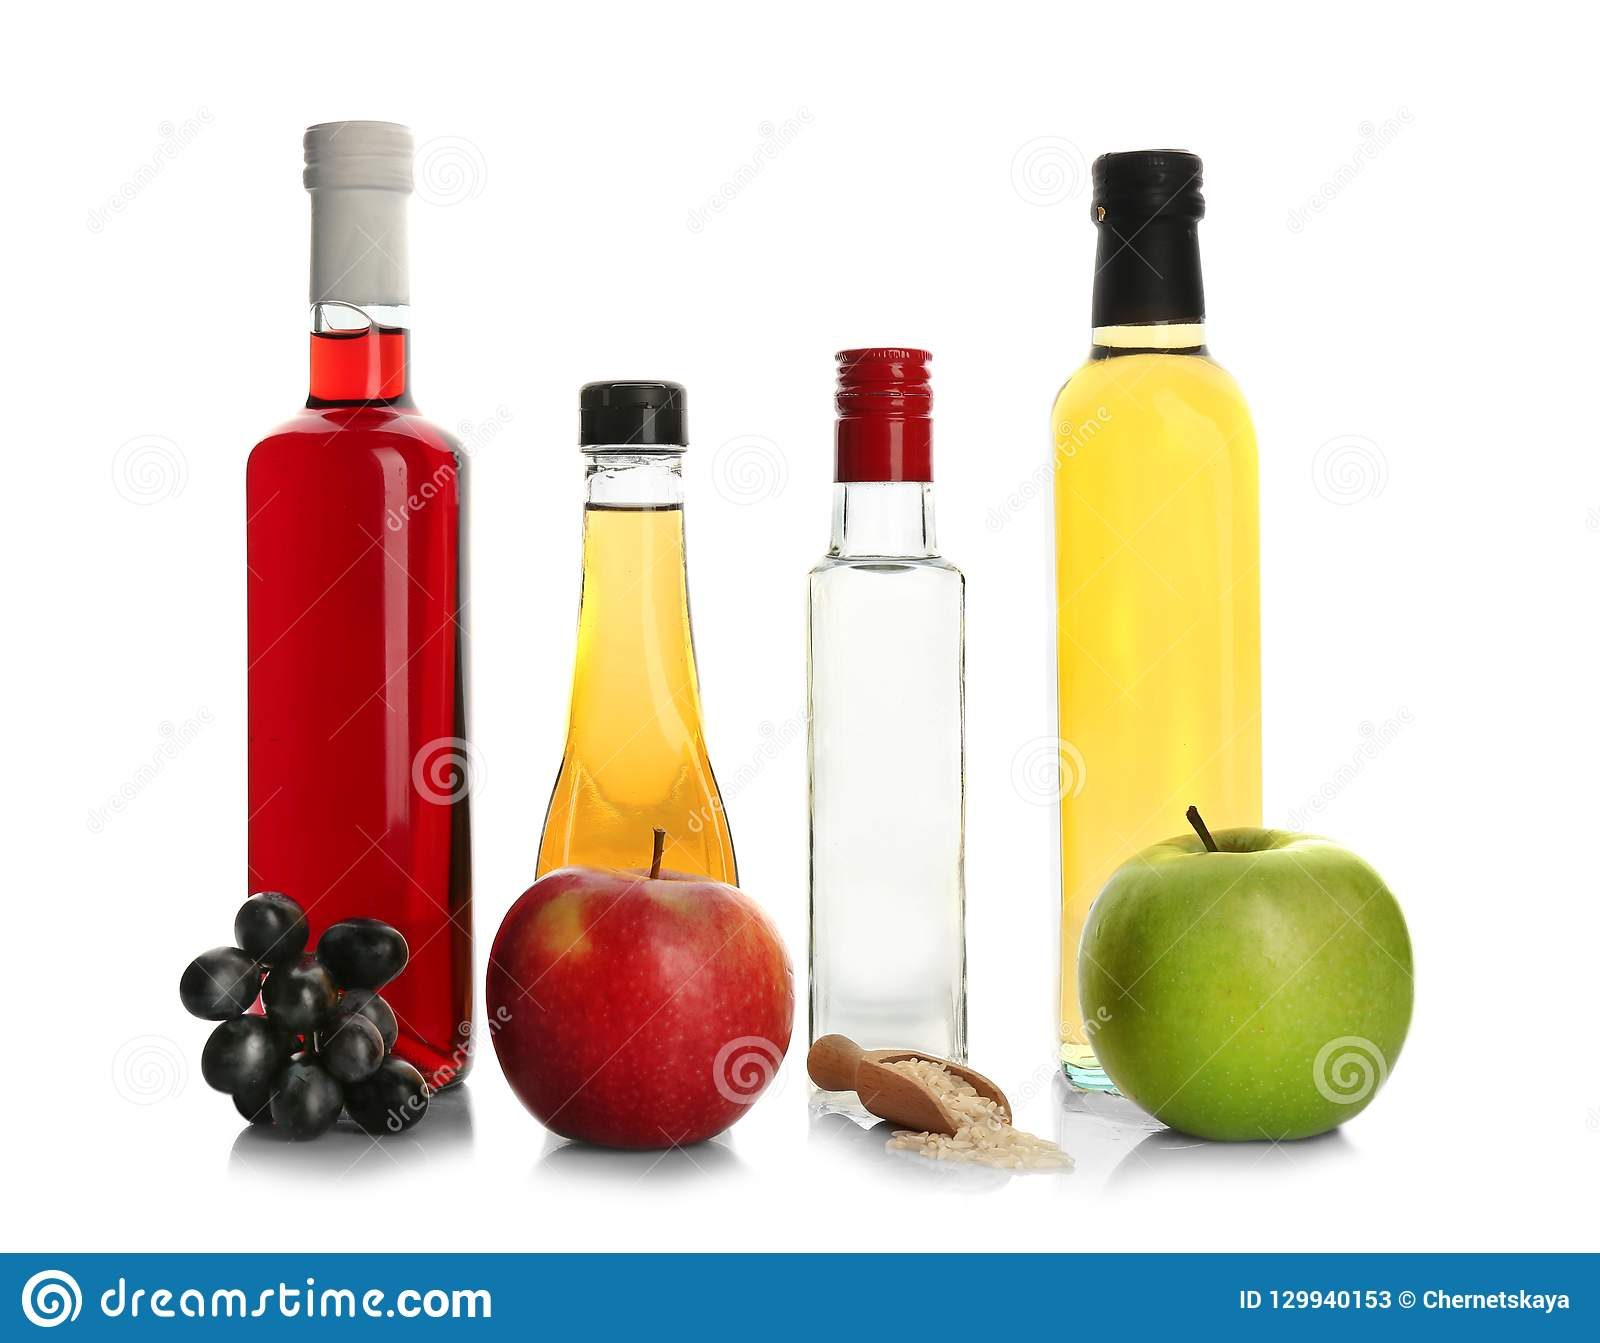 Composition with different kinds of vinegar